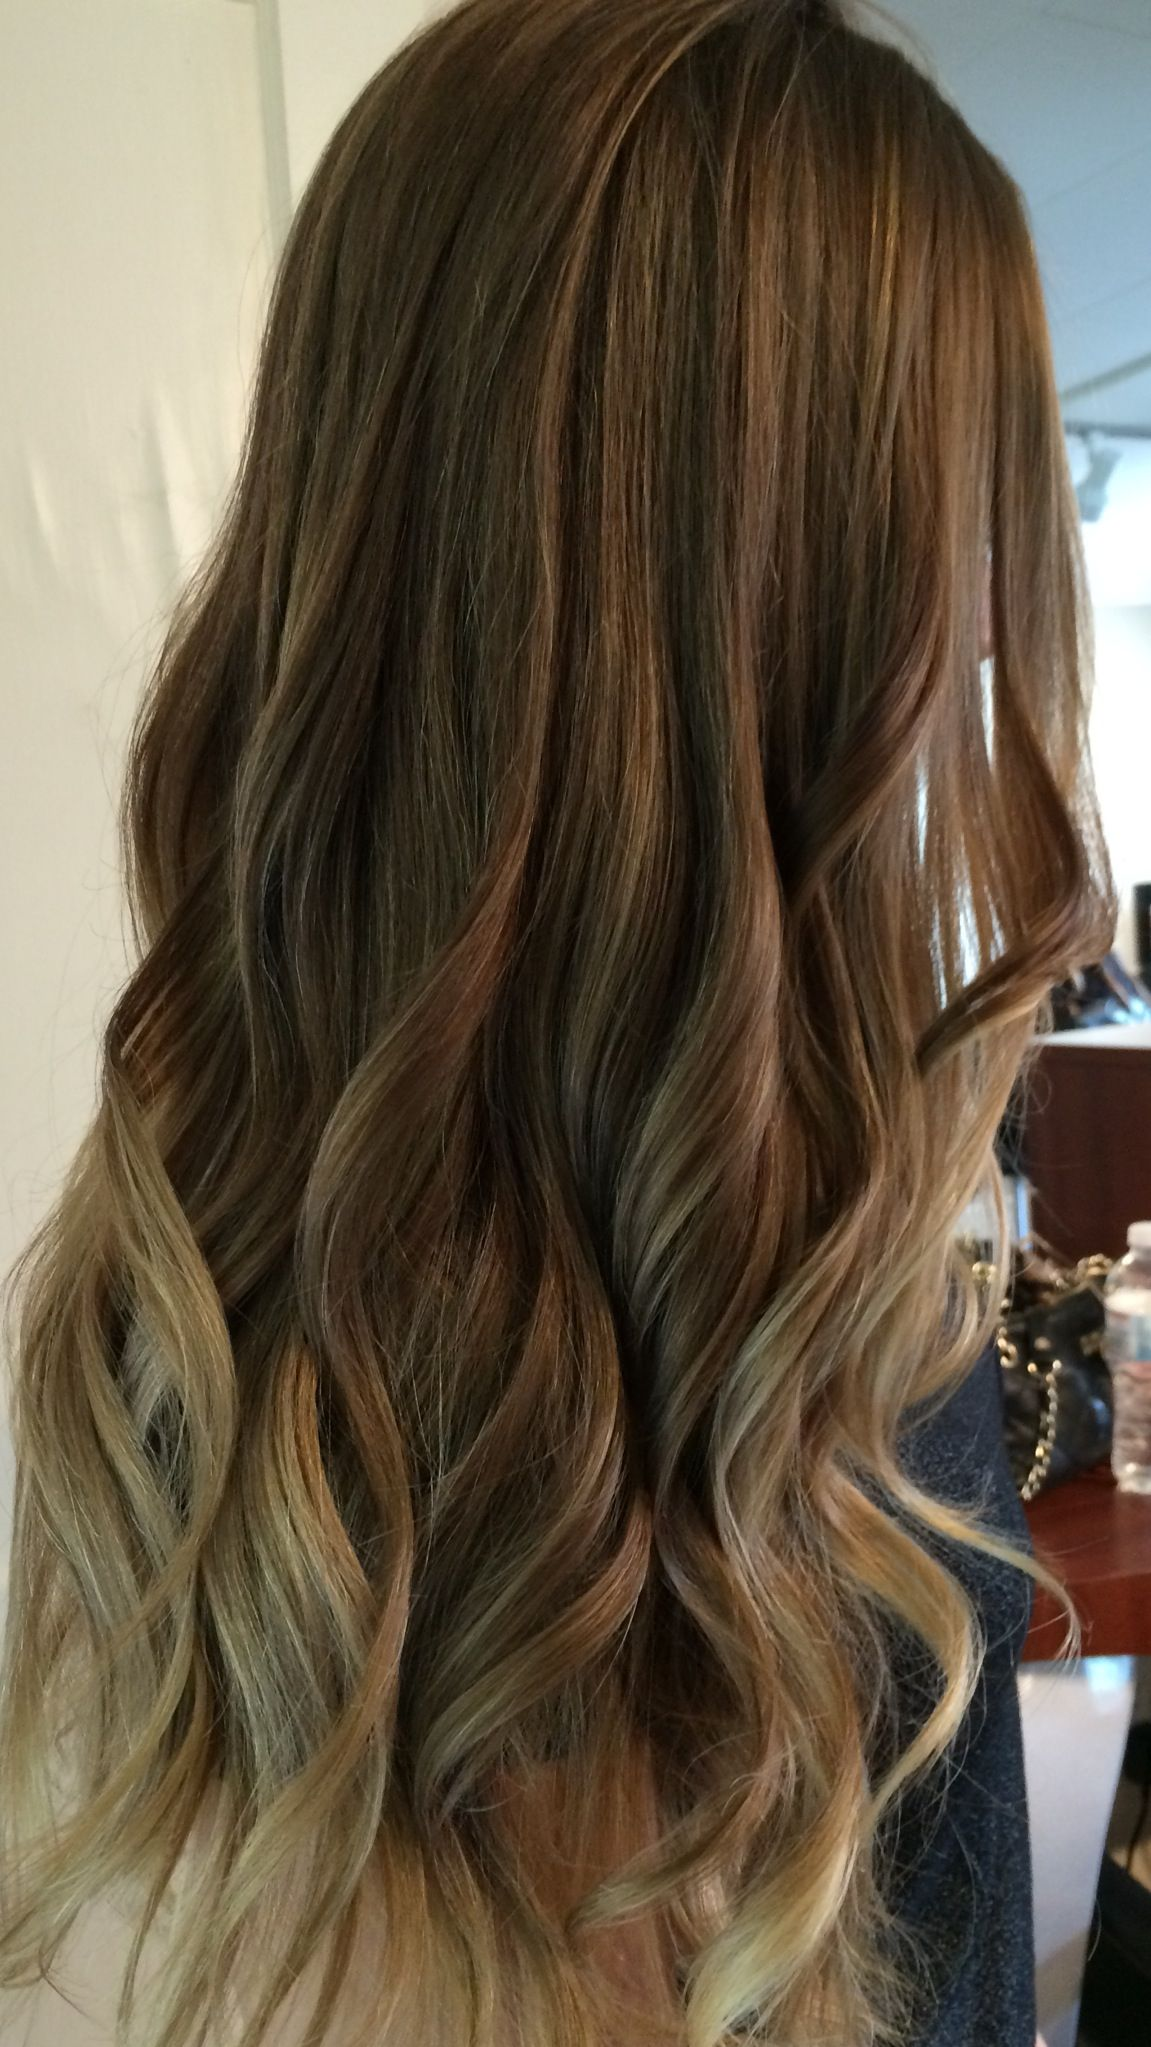 Balayage ombre using her natural dark blonde light brown ...